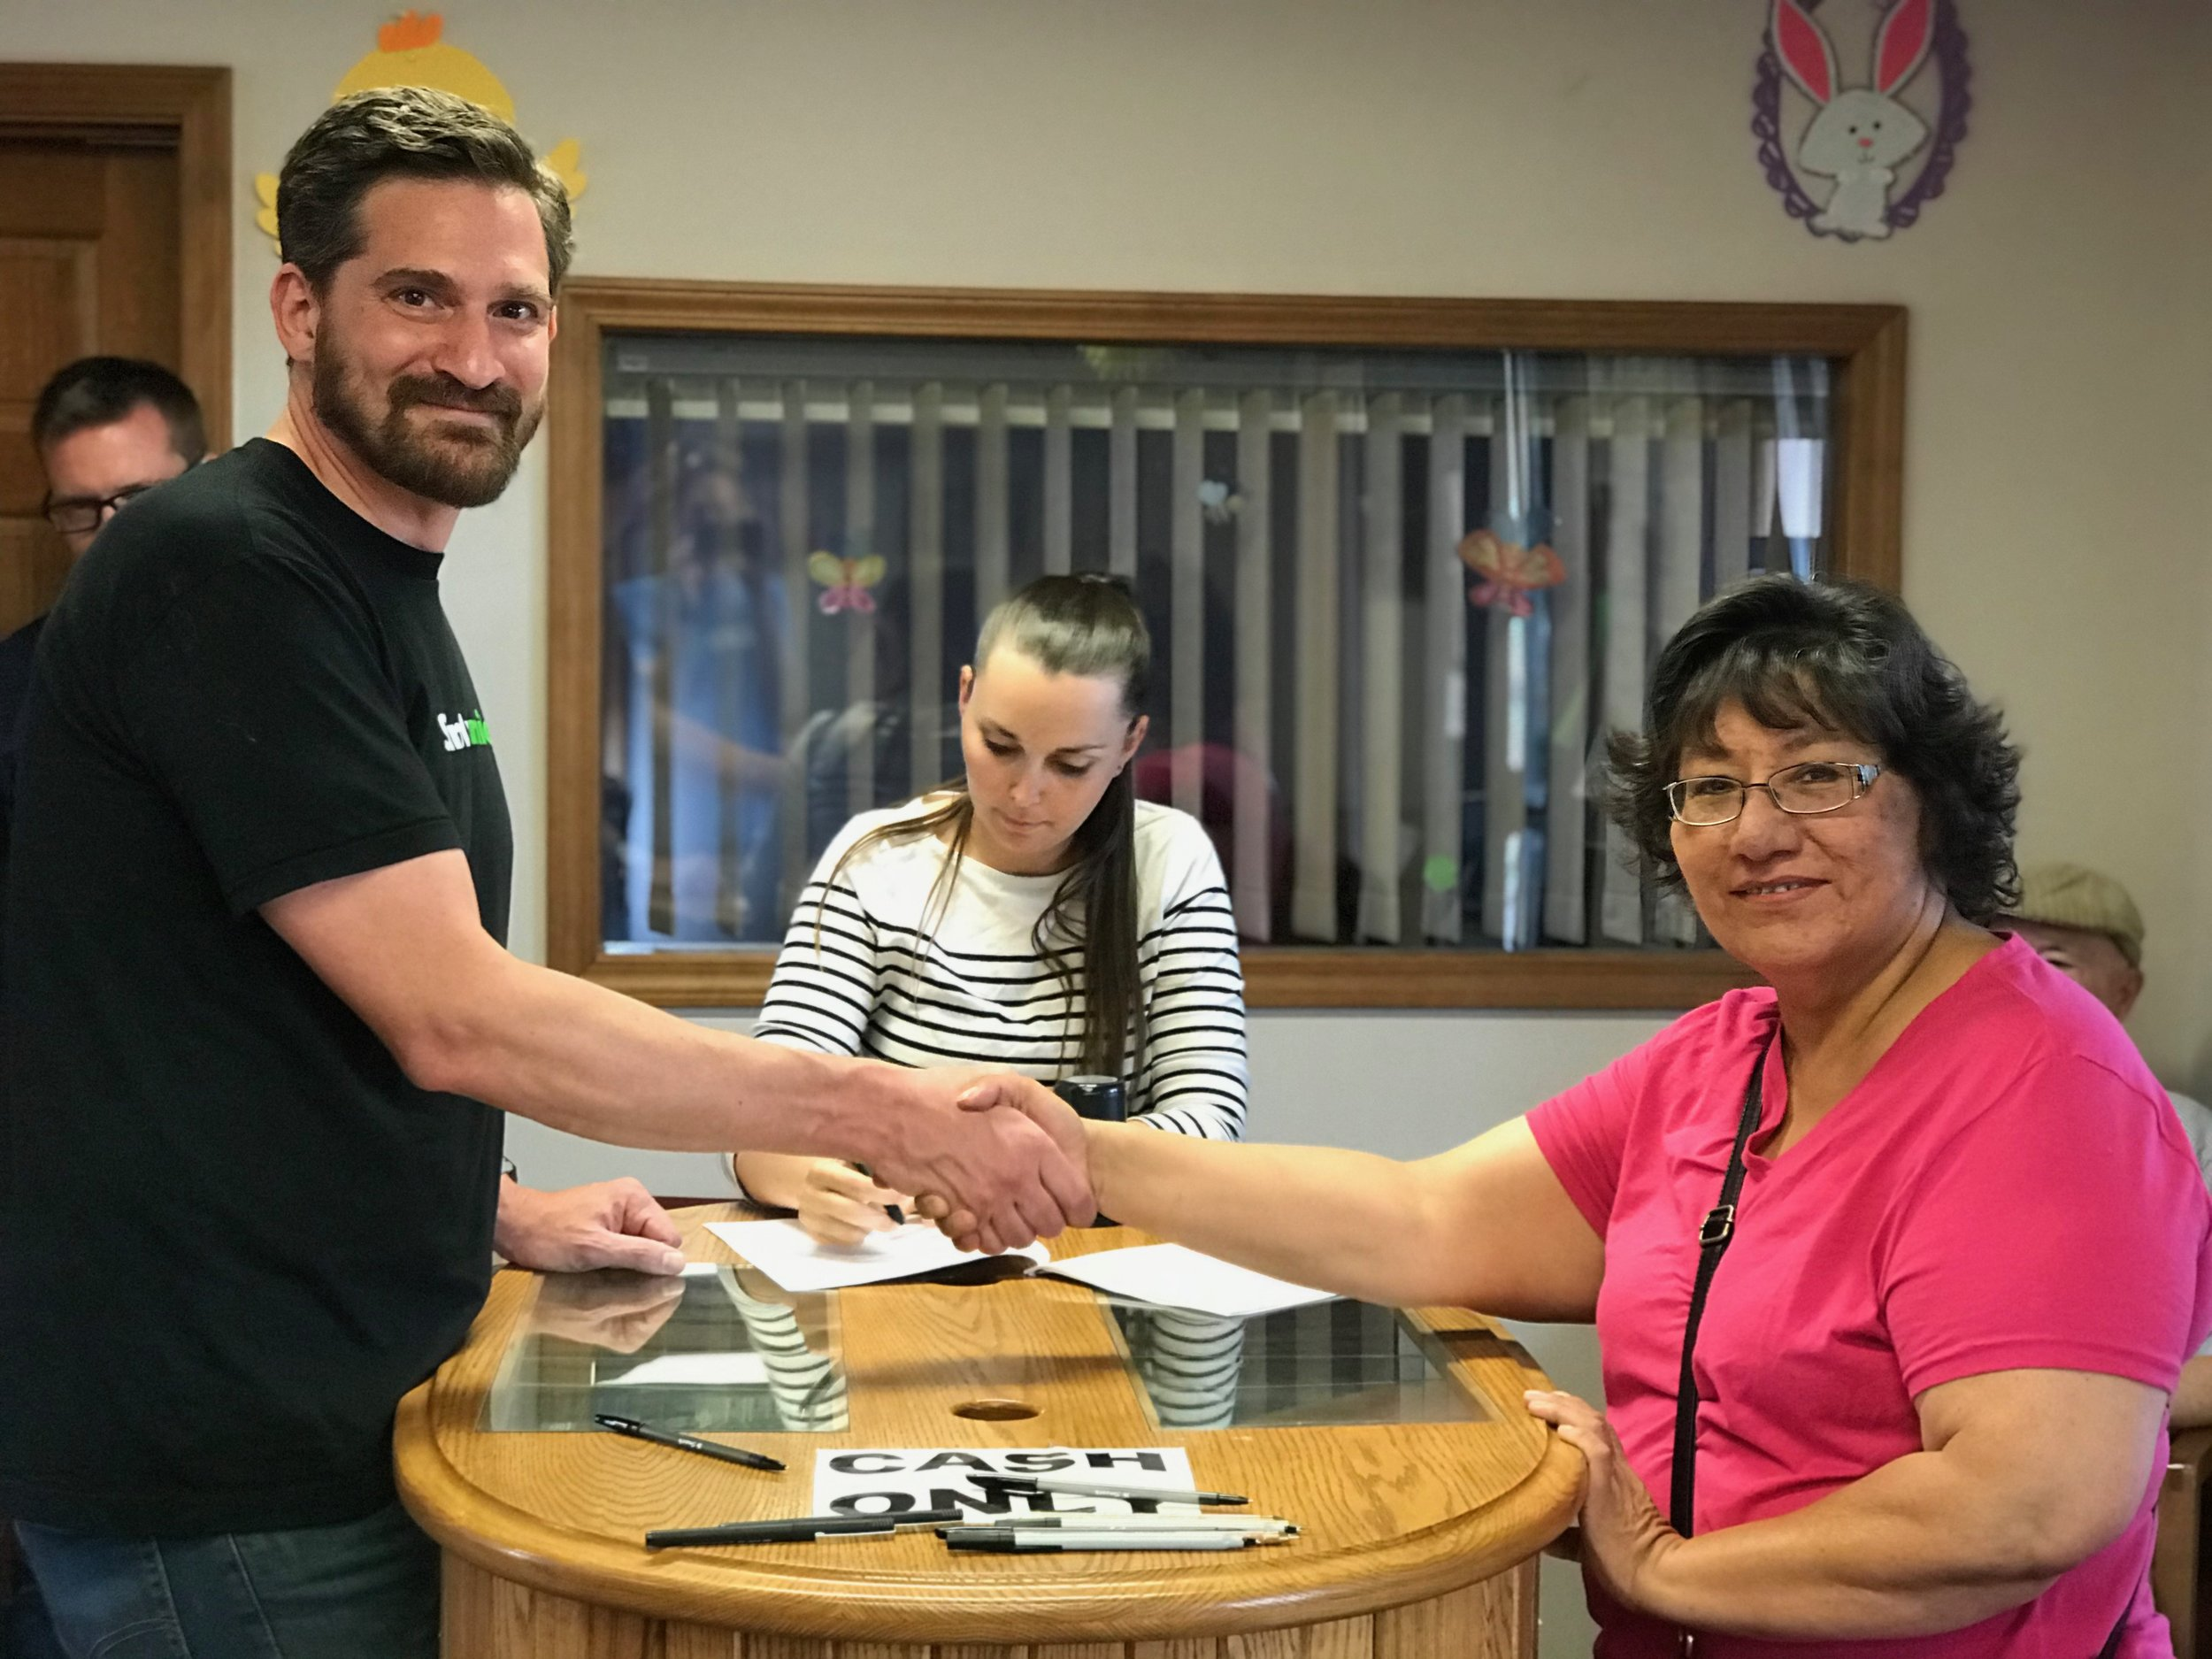 Deepening partnerships:  Bryan Nurnberger (left), Simply Smiles President and Founder and Toni Buffalo (right), Administrator of the Dakota Association of the United Church of Christ sign the 99-year lease agreement, allowing Simply Smiles to continue and expand its programming on the Cheyenne River Sioux Tribe Reservation in South Dakota.